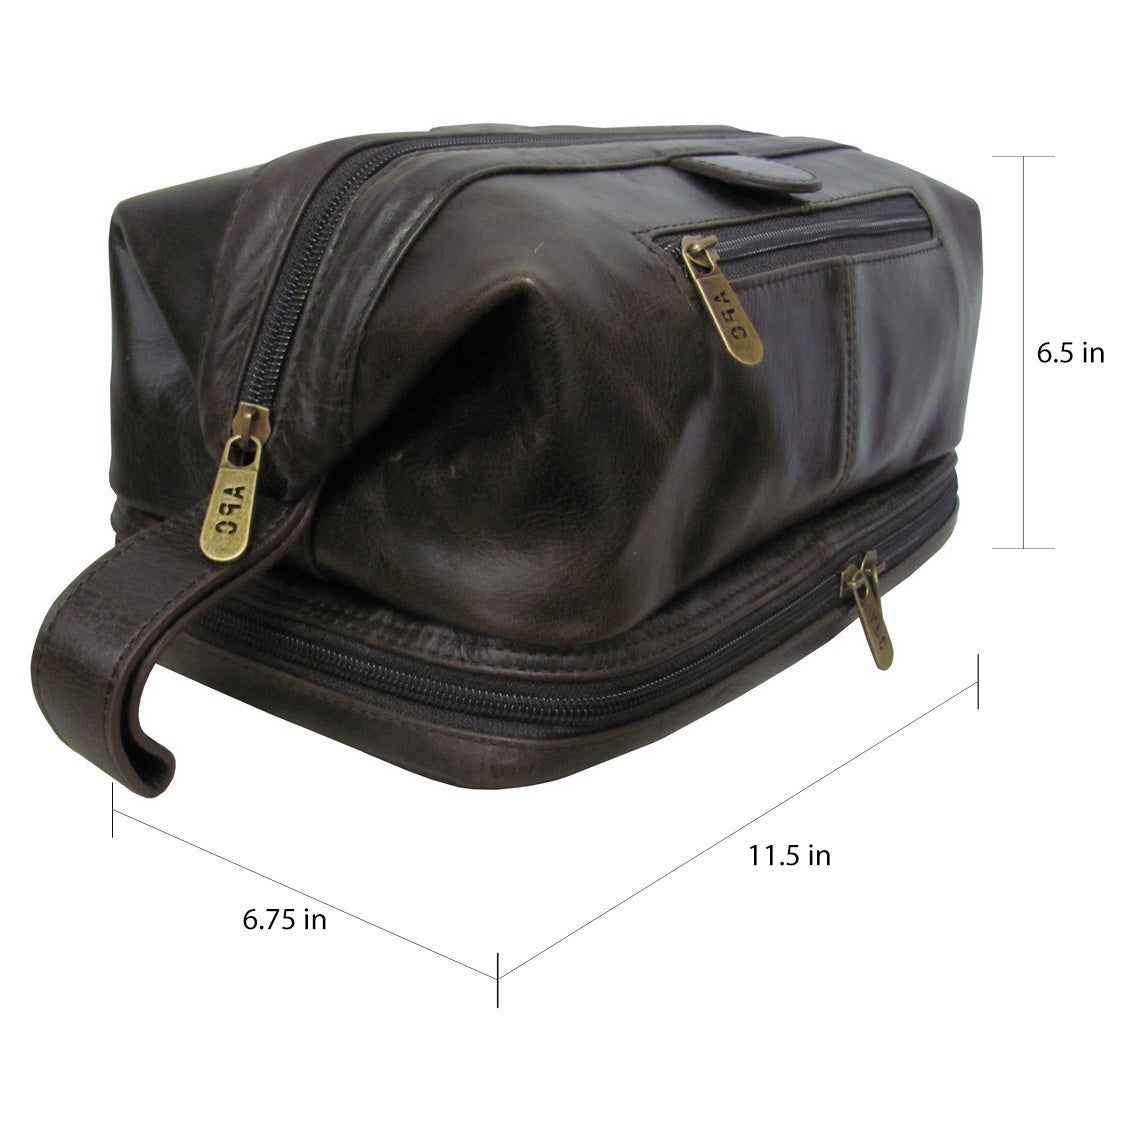 f682e9598a18 Shop Amerileather Men s Leather Toiletry Bag - Free Shipping On Orders Over   45 - Overstock - 43887